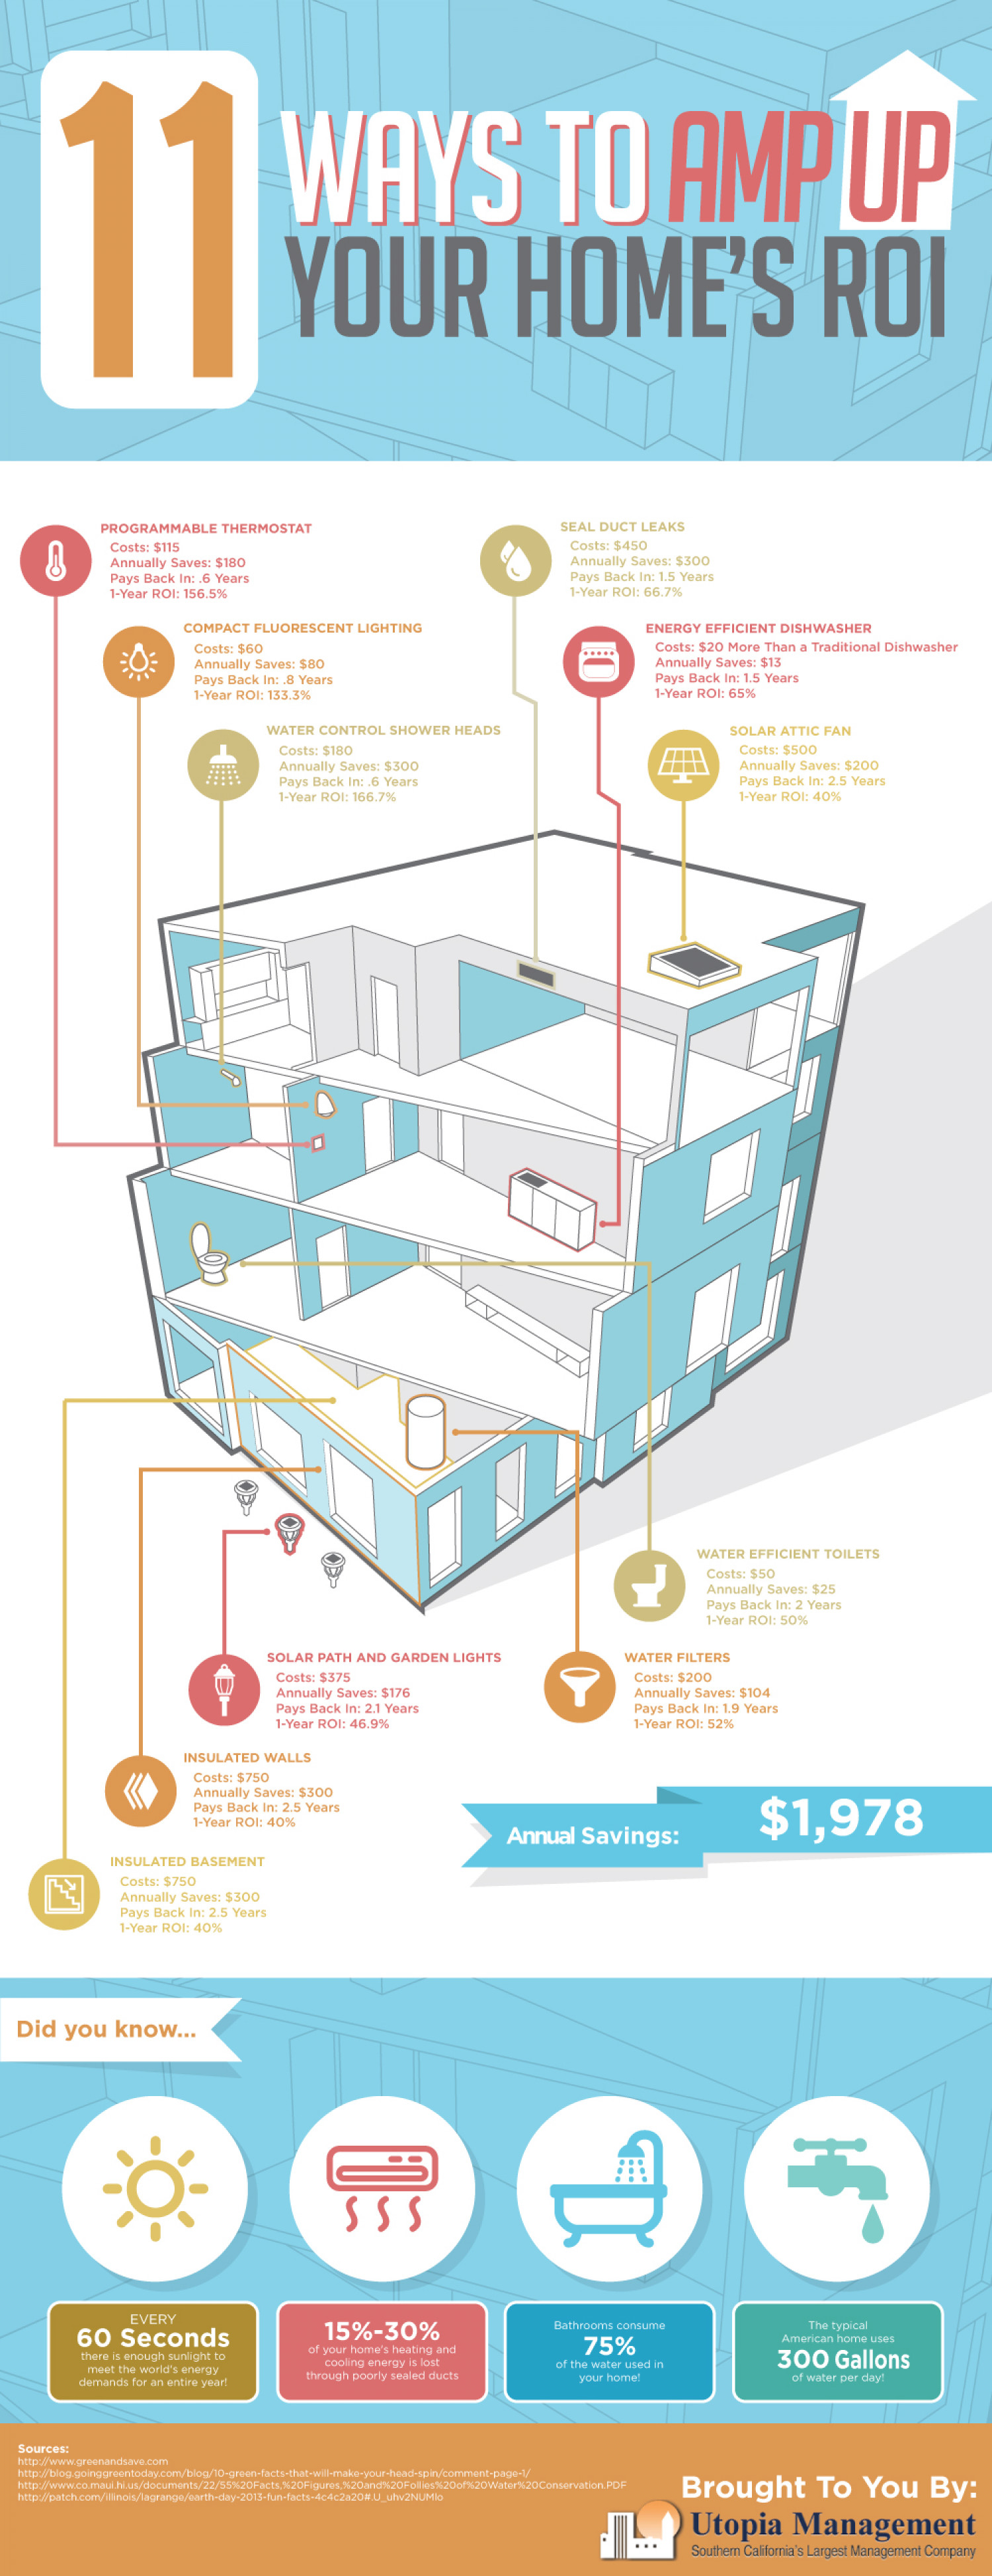 11 Ways to Amp up Your Homes ROI Infographic